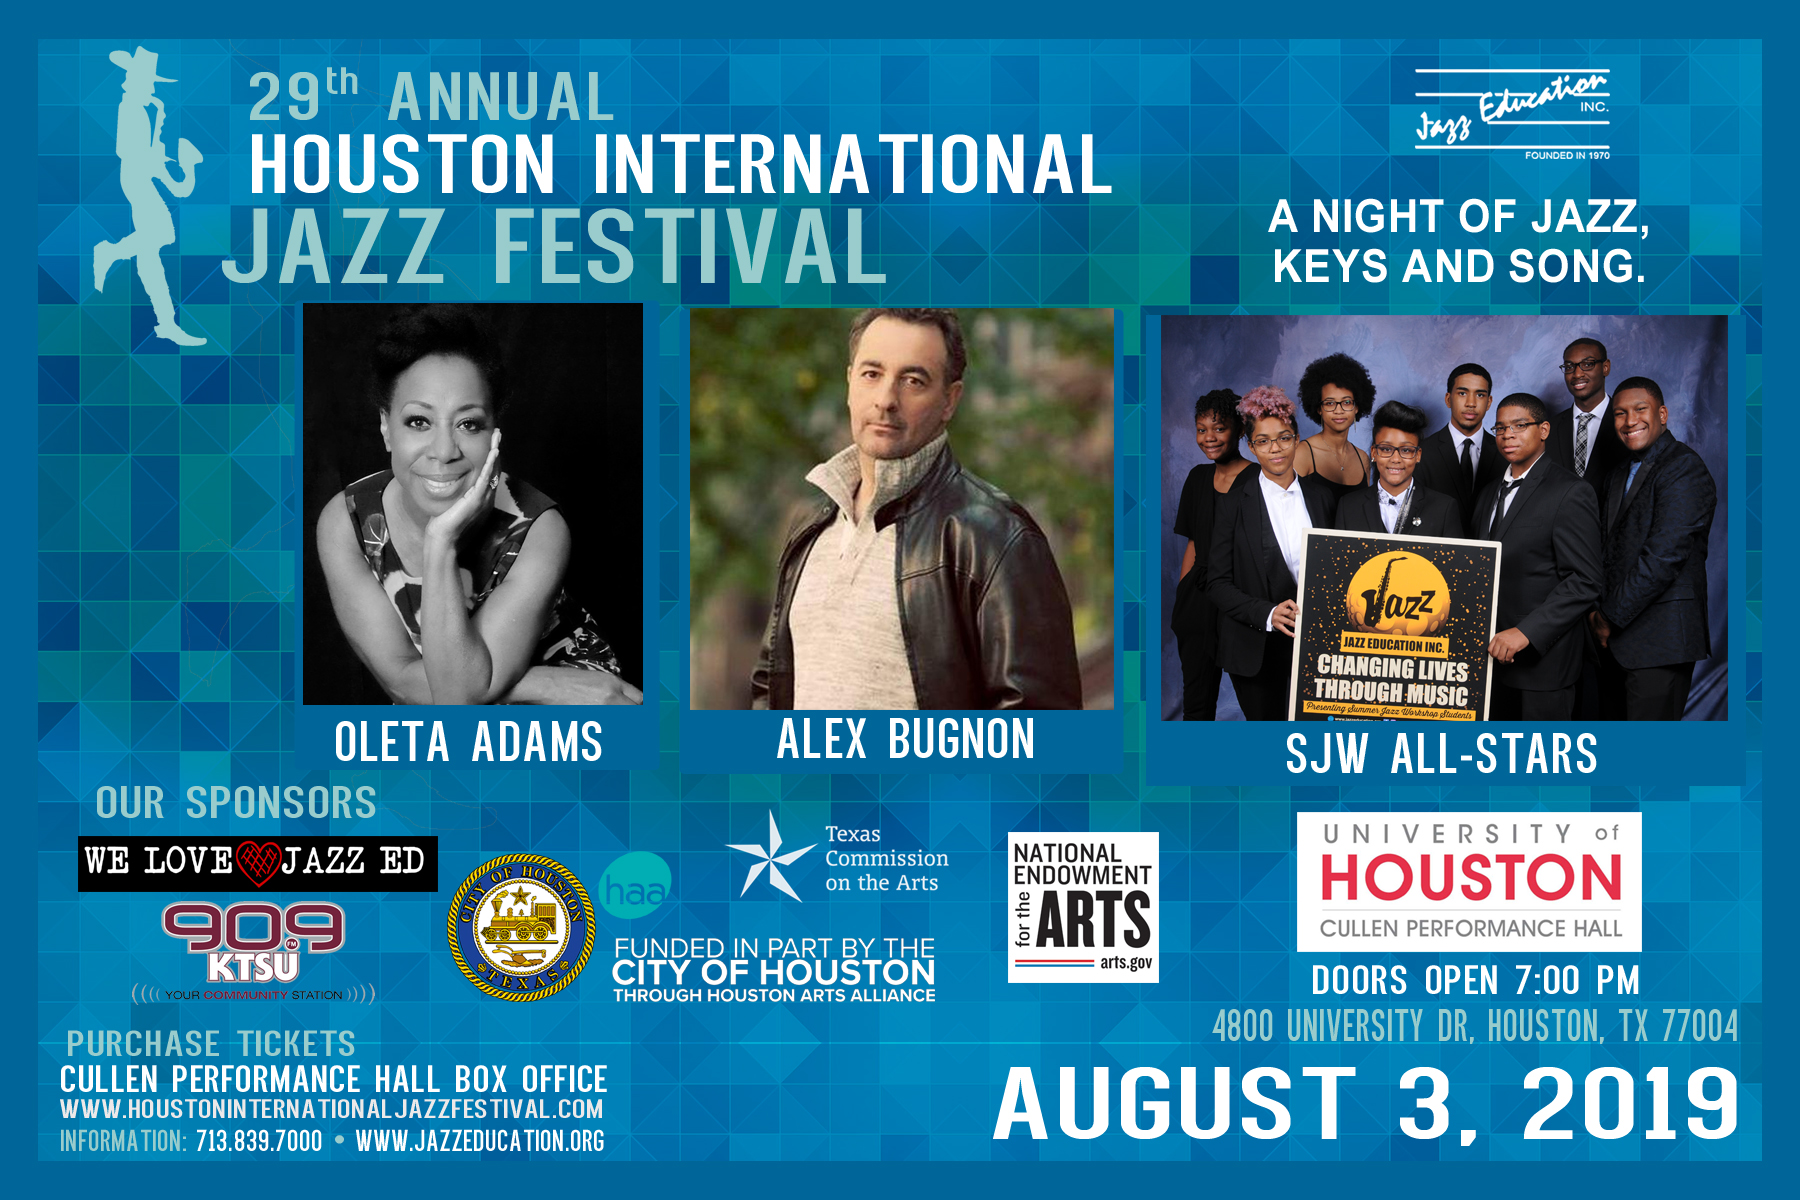 29th Houston International Jazz Festival